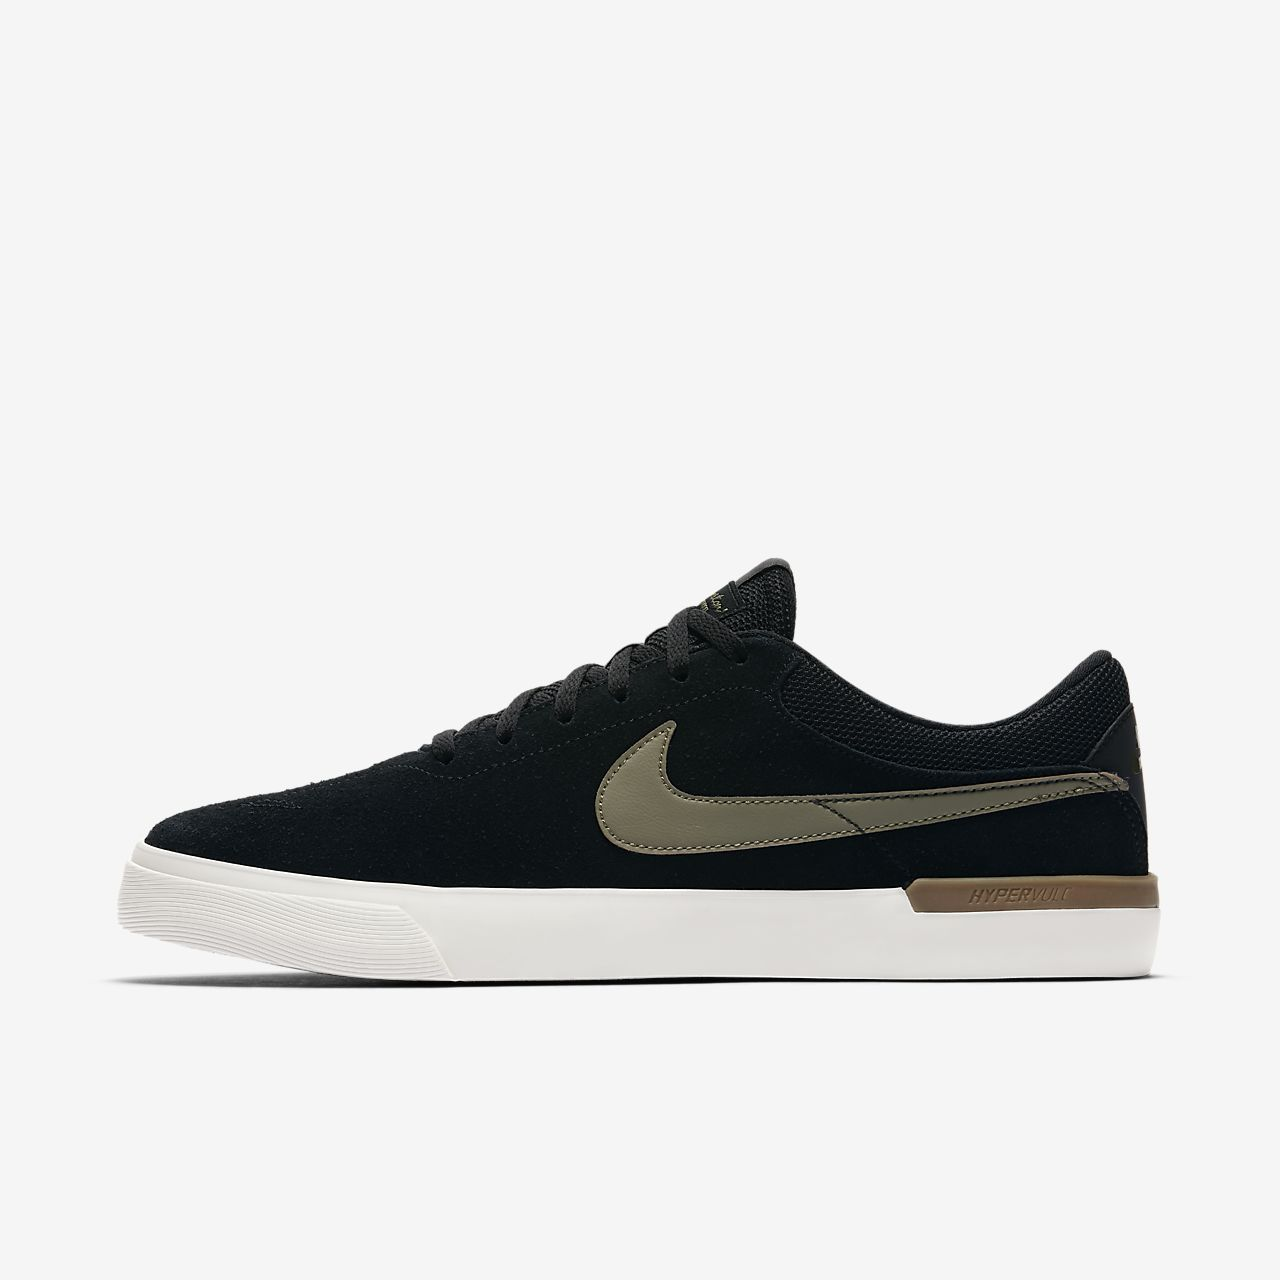 ... Nike SB Koston Hypervulc Men's Skateboarding Shoe